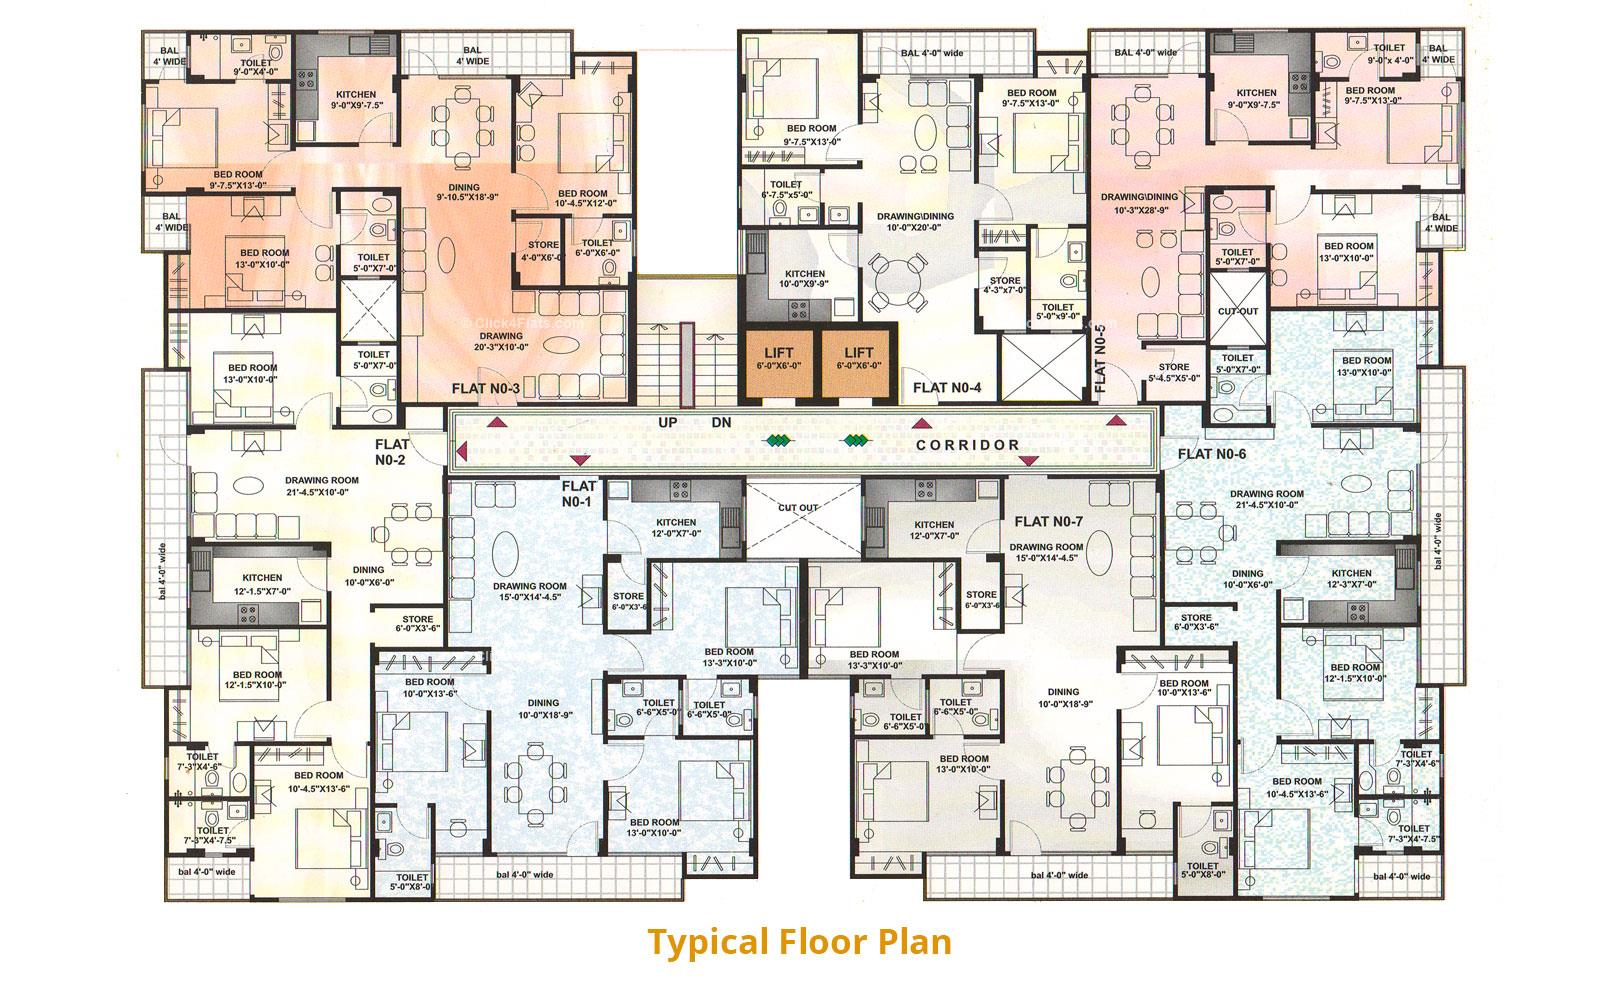 Paradise Apartments Typical Floor Plan